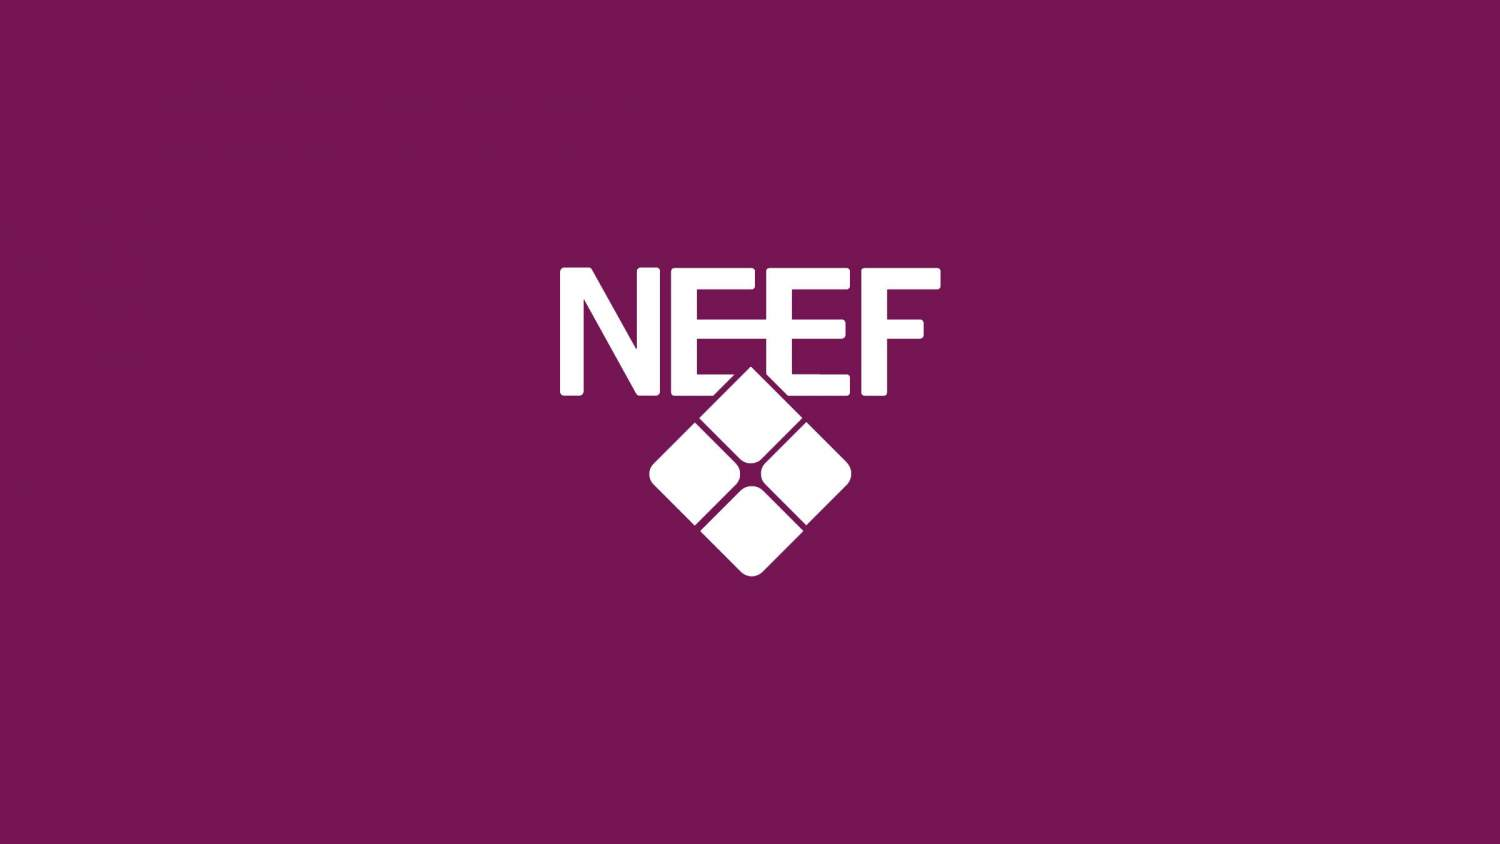 NEEF Administrative Document